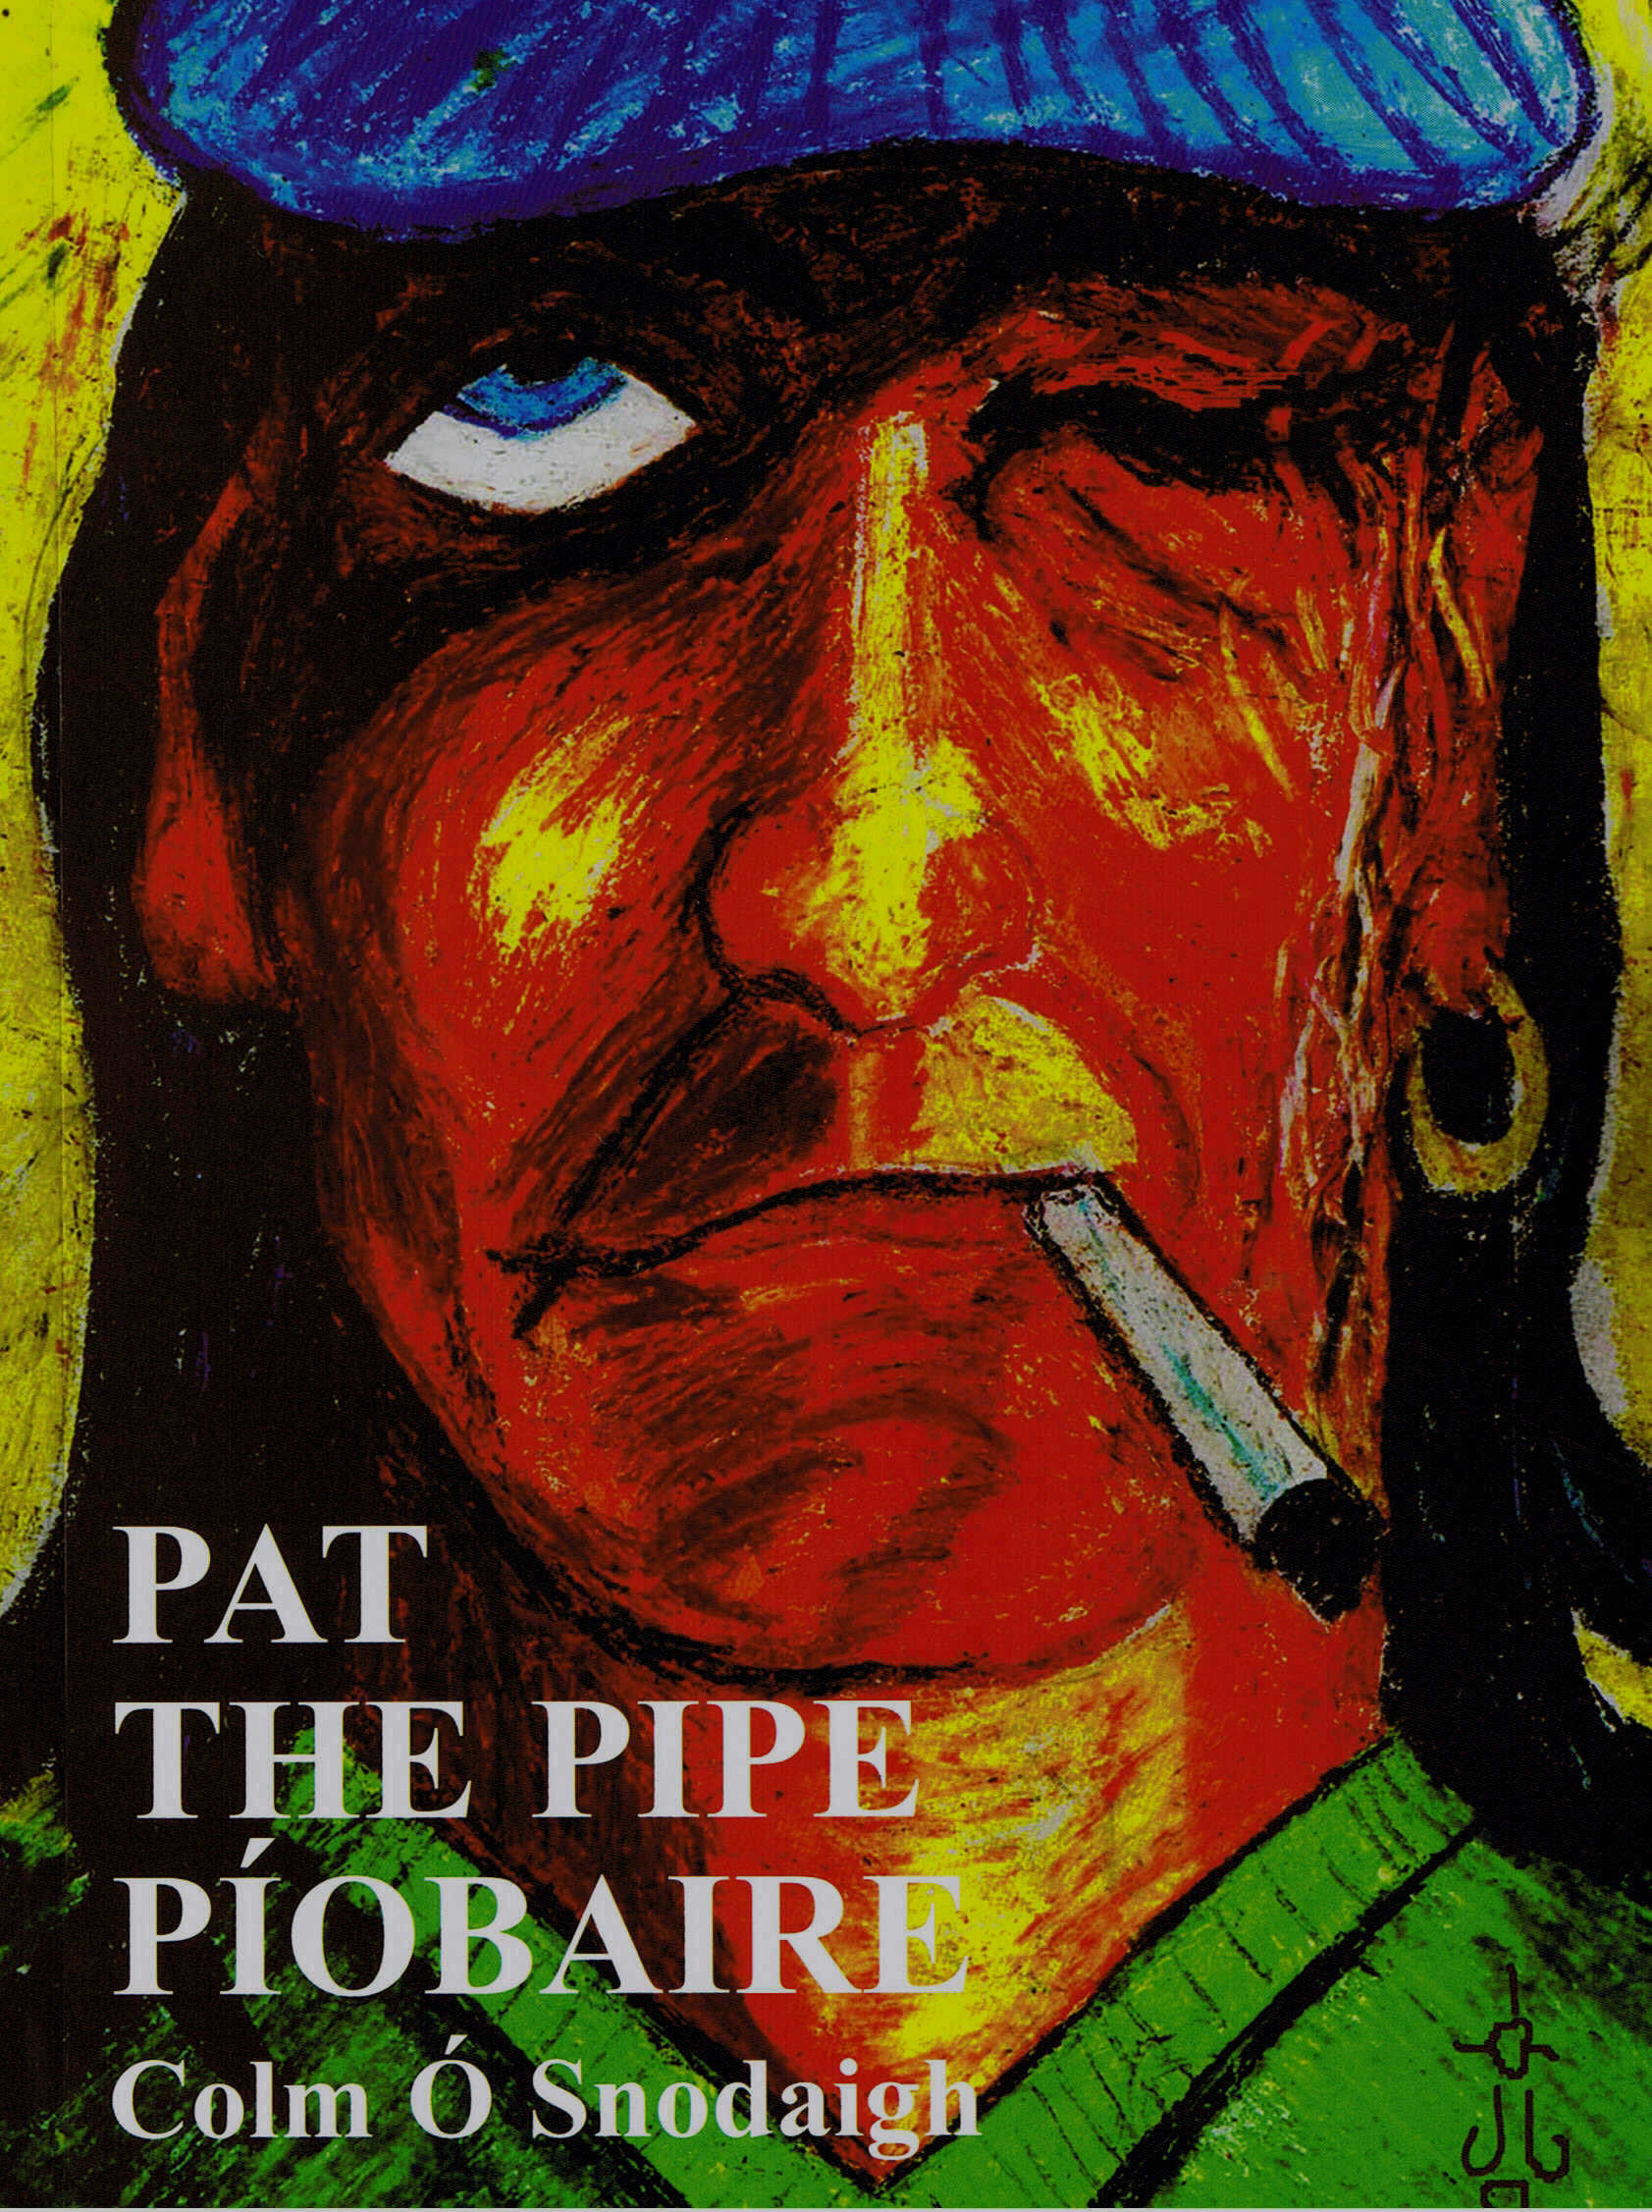 Pat the Pipe 2006